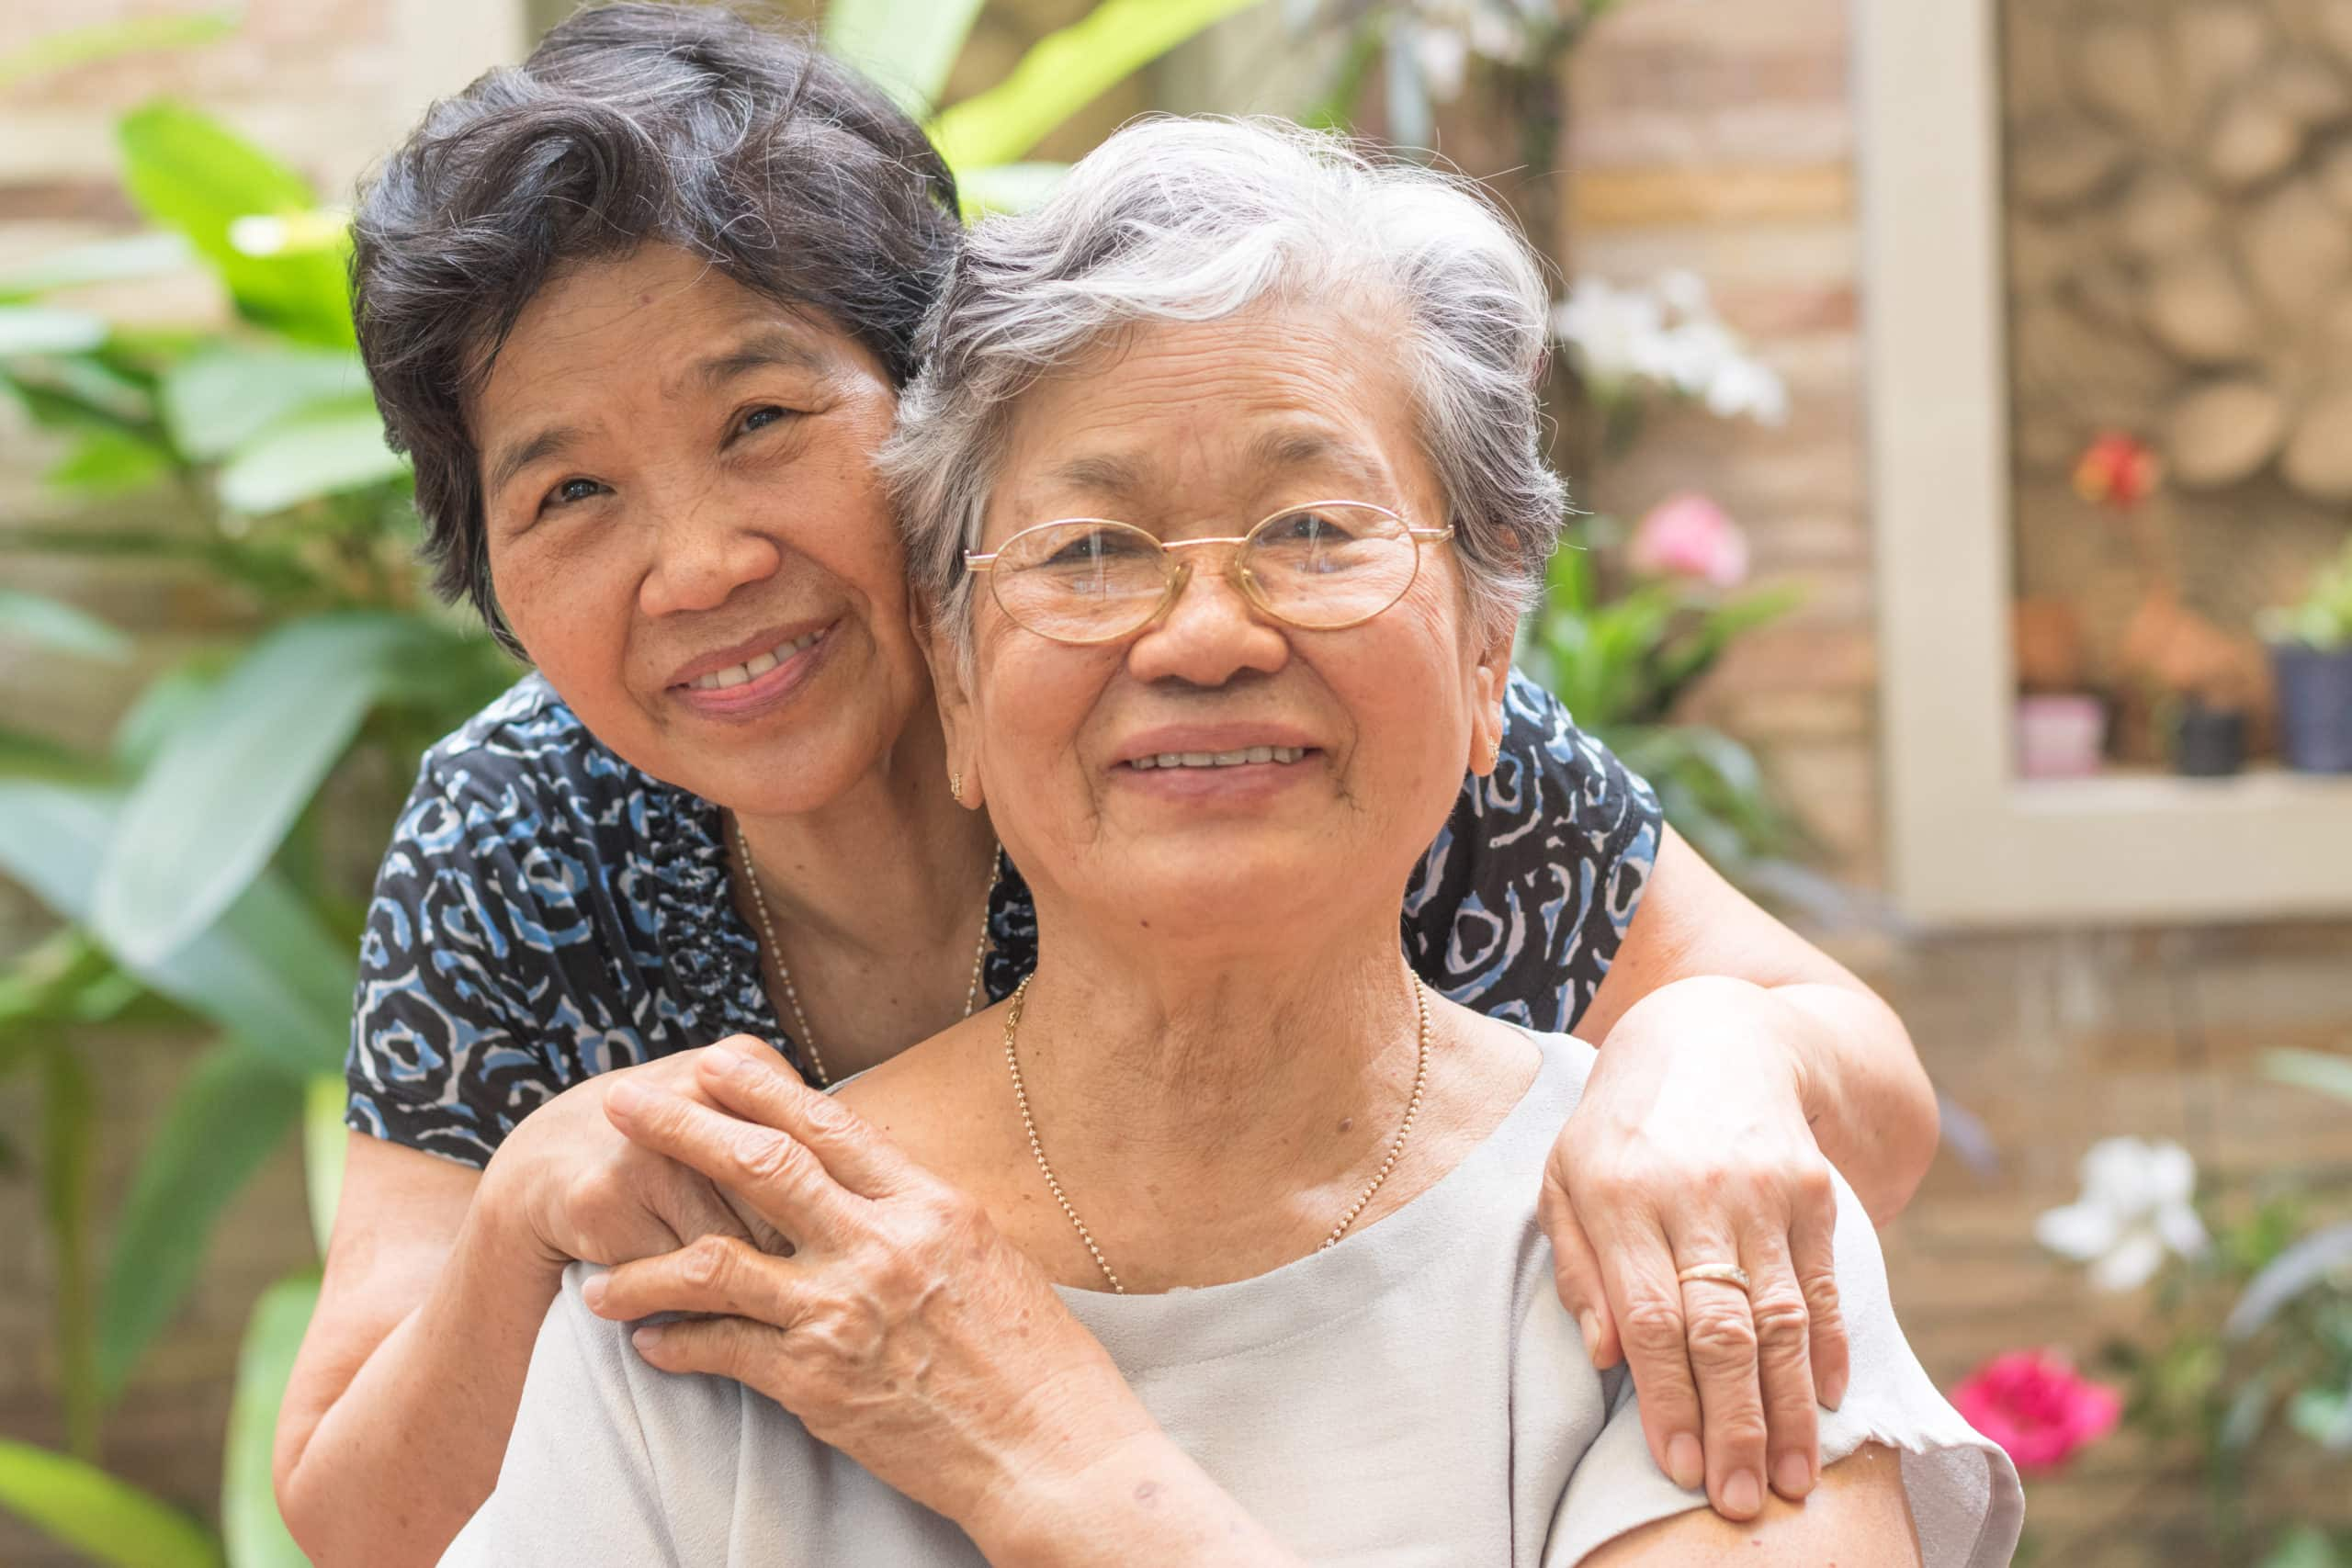 The Schmieding Home Caregiver Training Program, a program of the University of Arkansas for Medical Sciences (UAMS), is offering free Respite Volunteer Training on July 27 in Fort Smith, Arkansas.